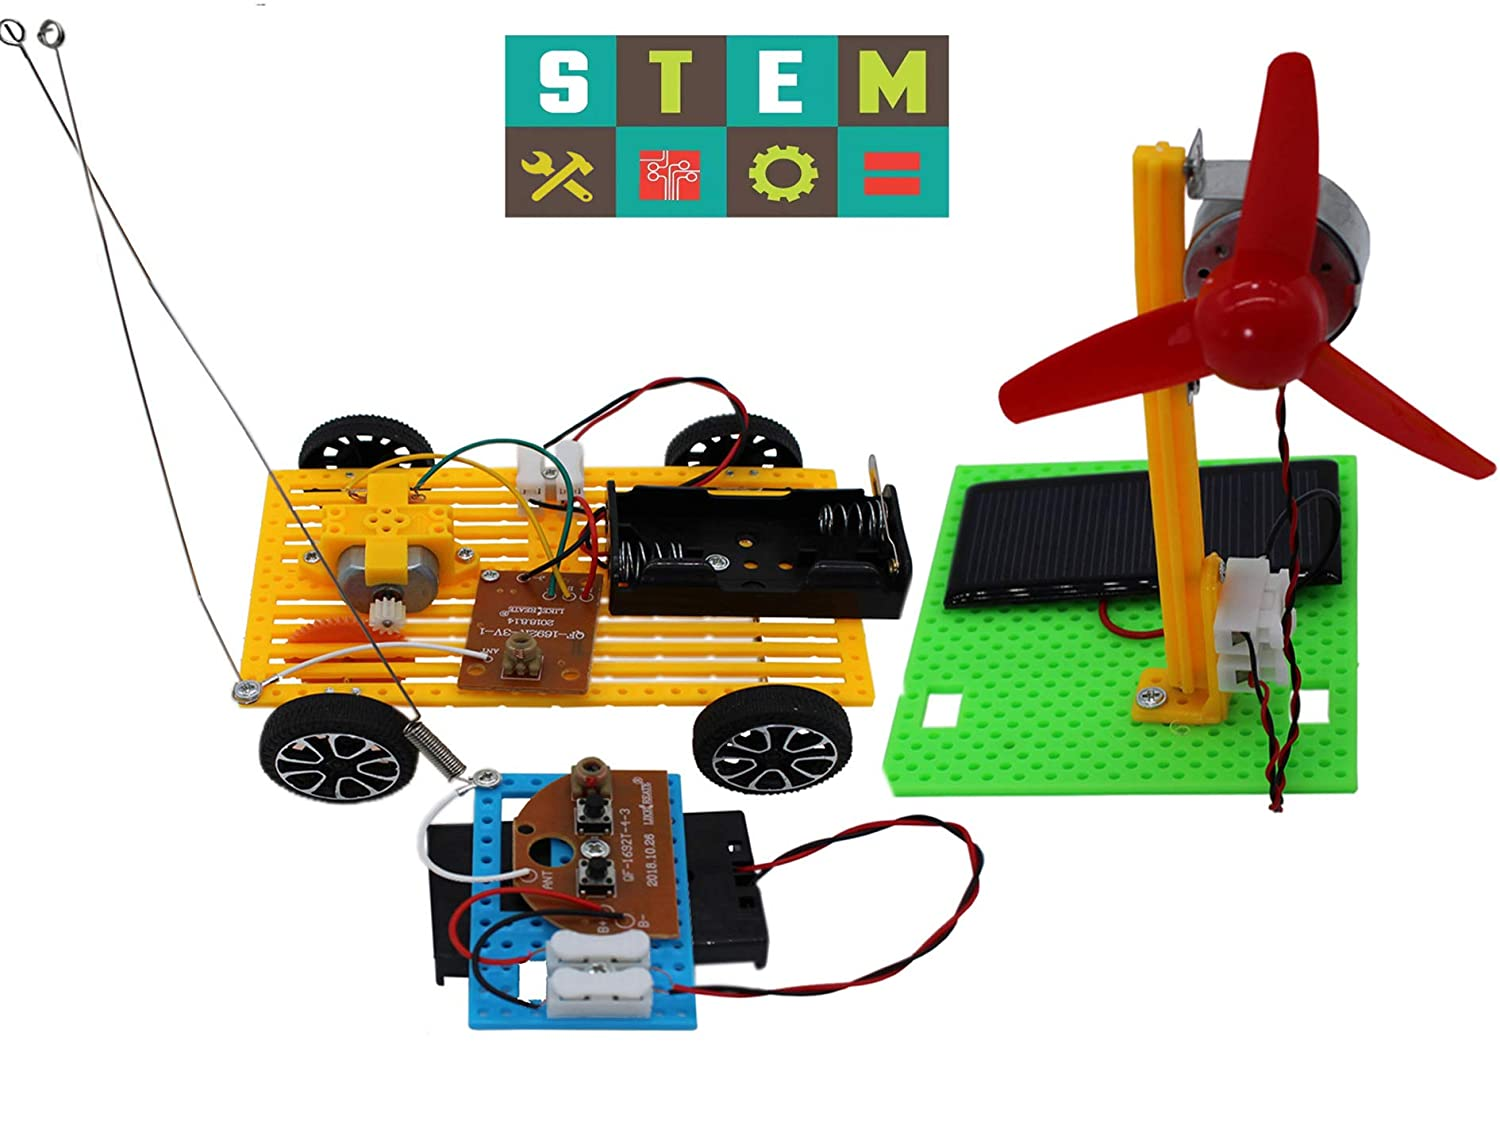 Science Free shipping anywhere in the nation Kits 2 Set Educational 67% OFF of fixed price for Stem DIY Engineering Products